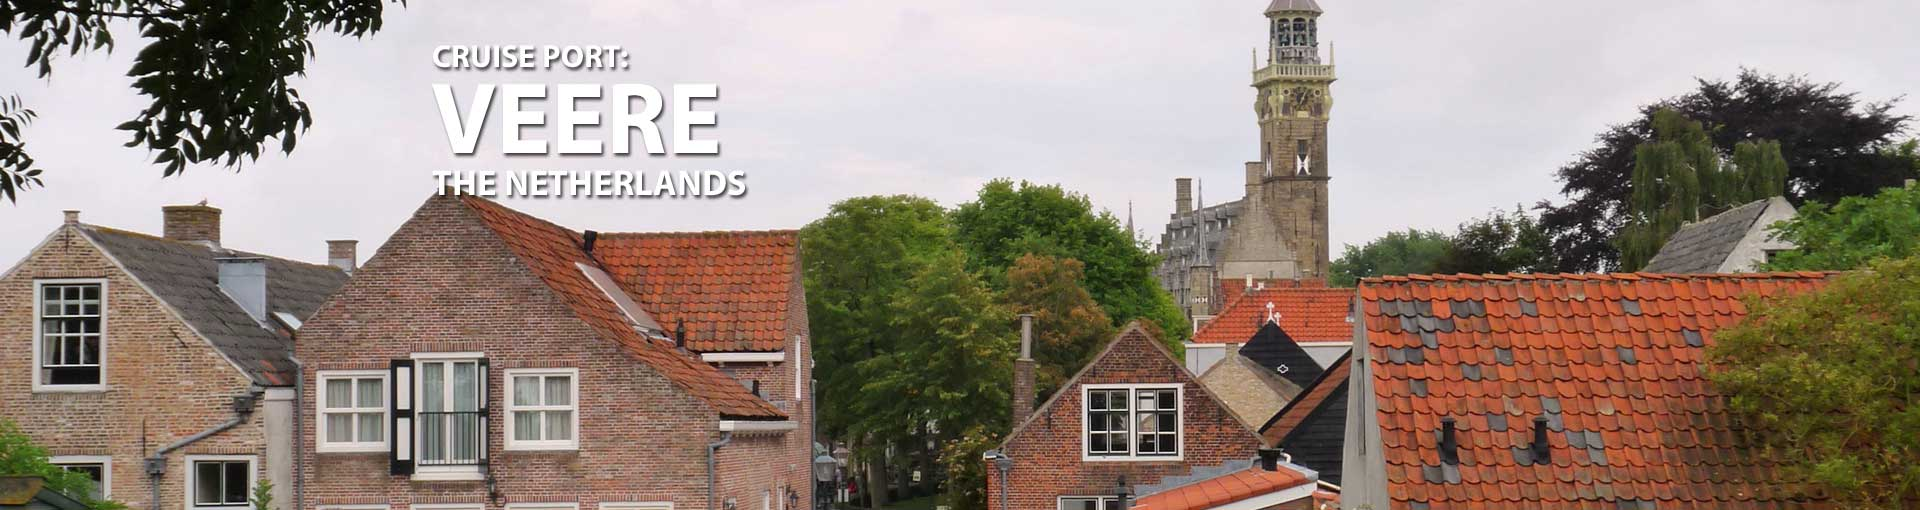 Cruises to Veere, The Netherlands